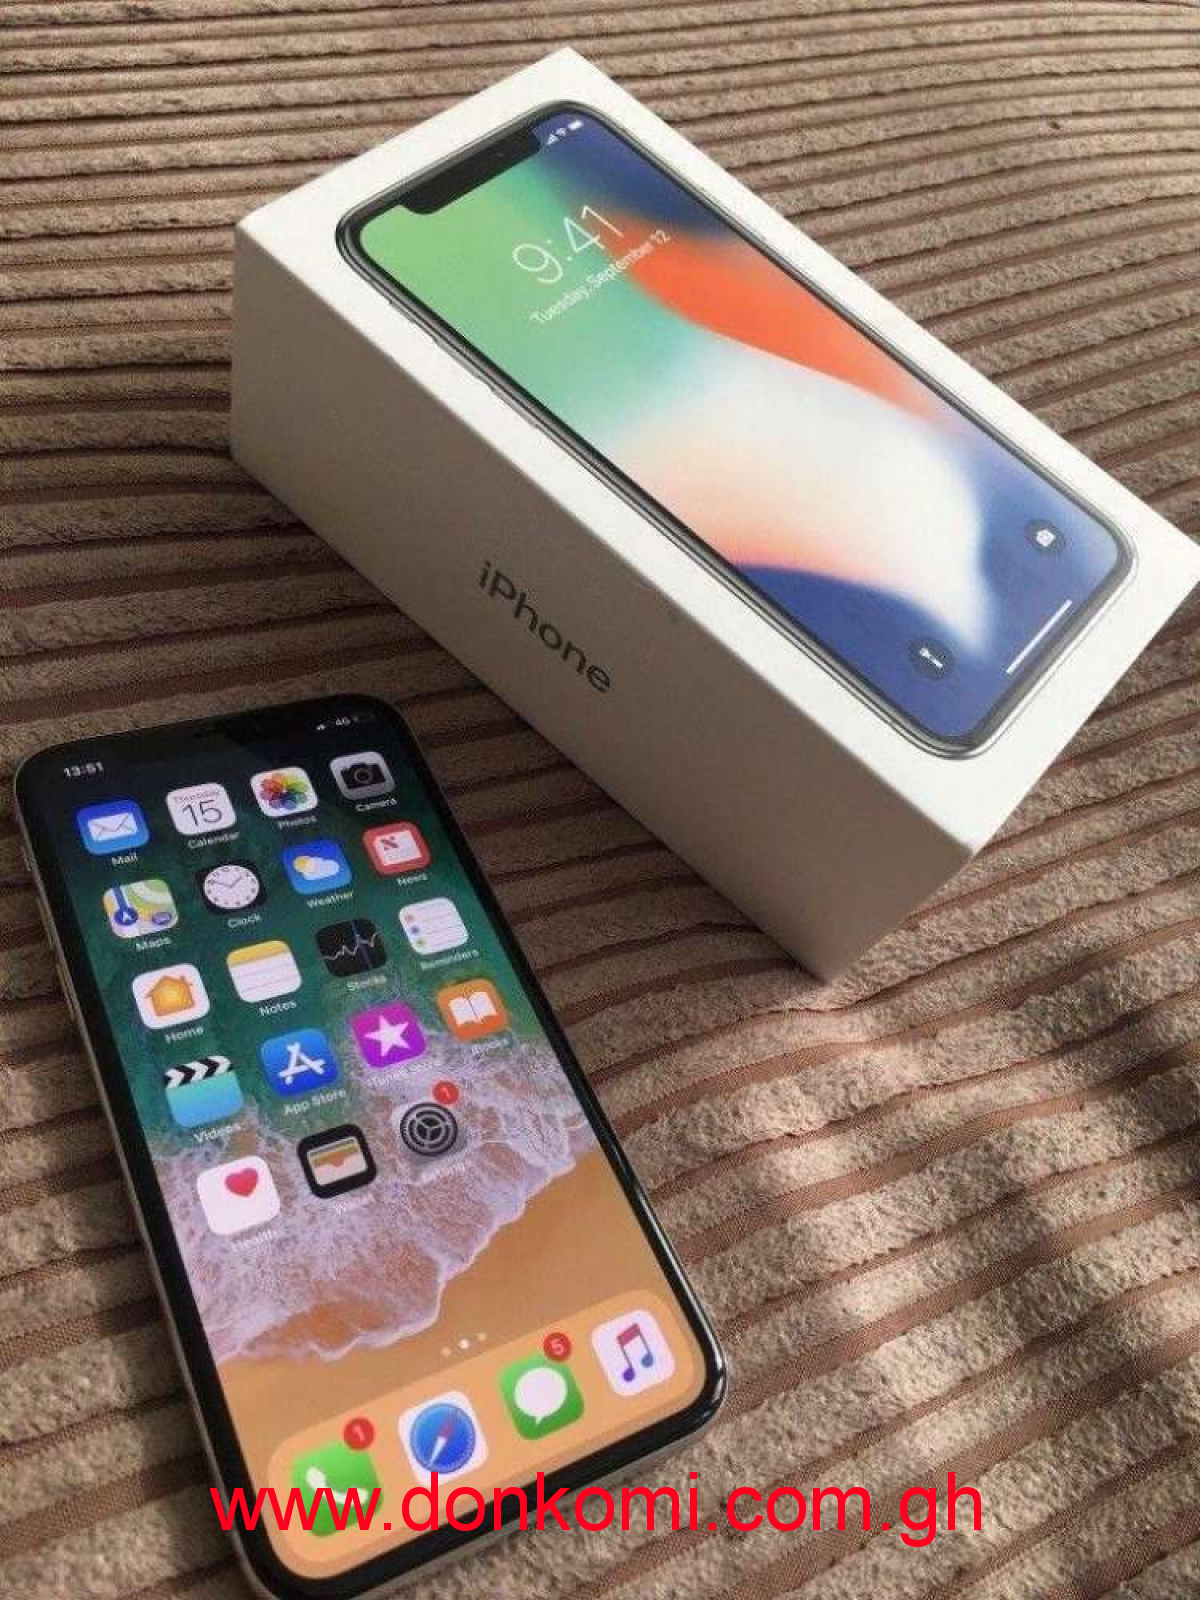 iPhone X 256GB is used for two weeks but very neat